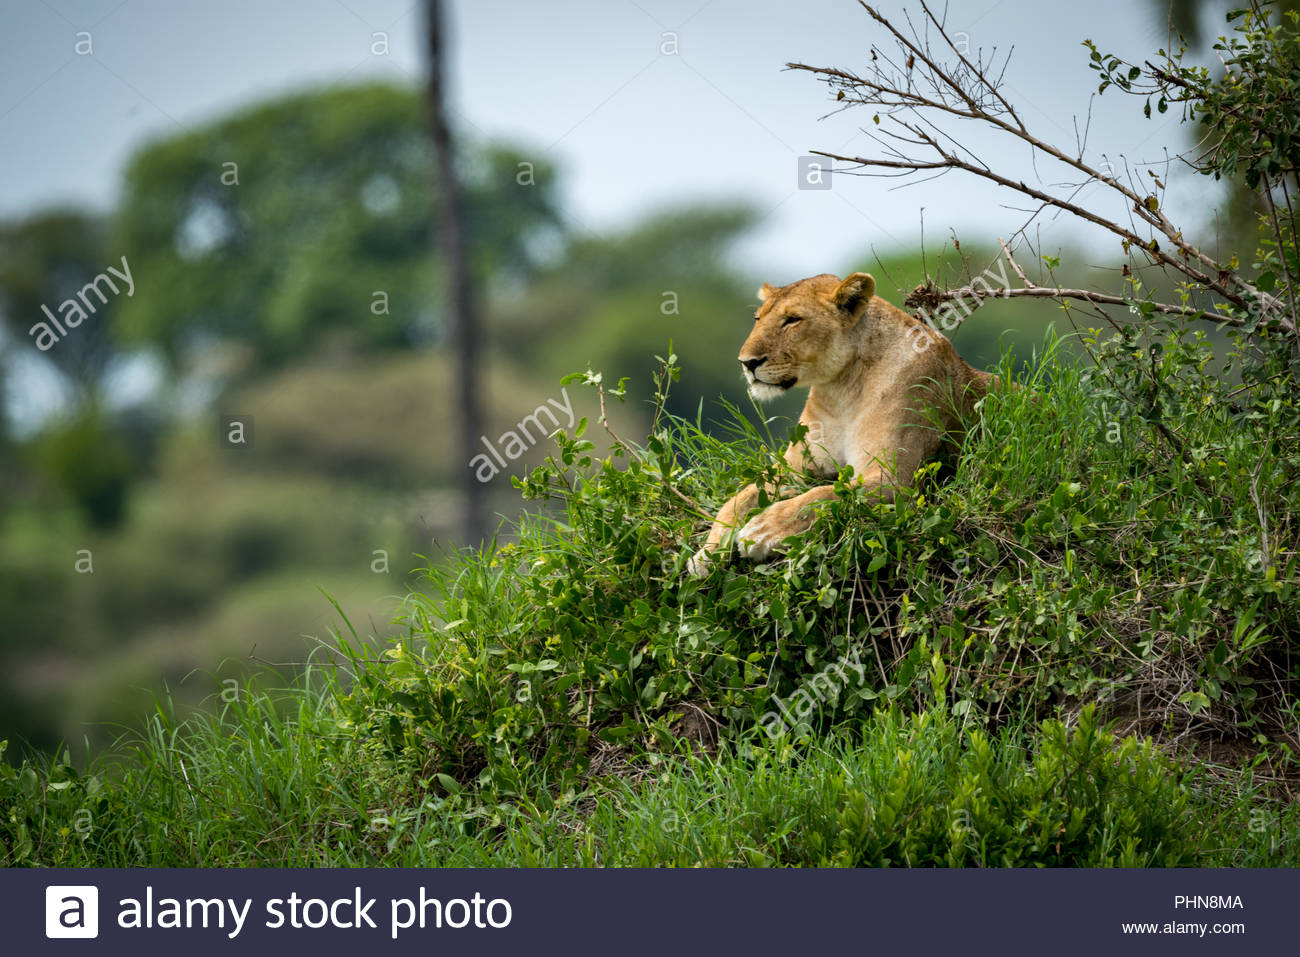 Lioness lying on grassy mound looking left - Stock Image